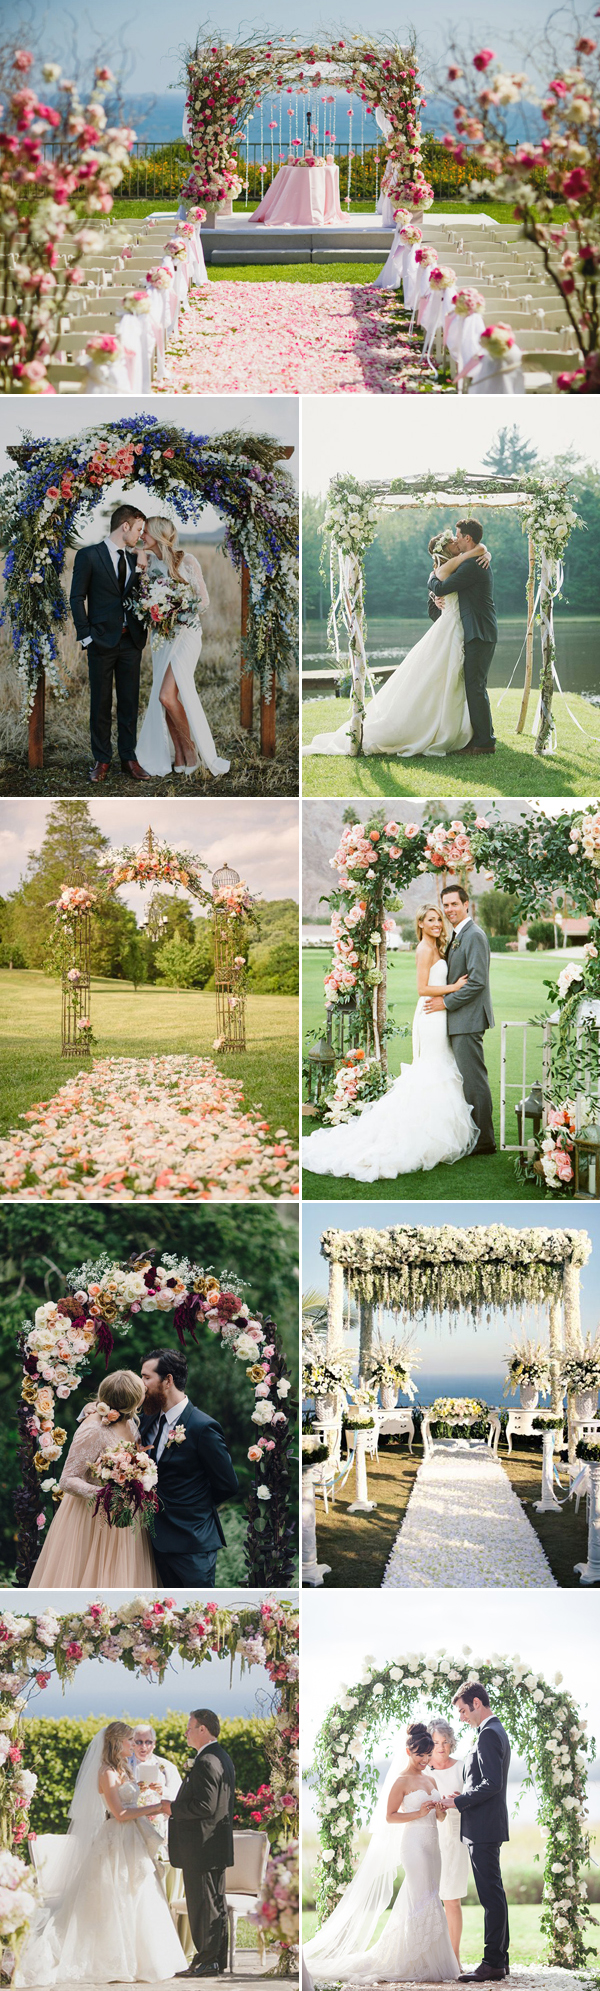 Credits (from the top left to right): Nisie's Enchanted Florist / Bek Grace / M2 Photography / Krystal Mann / Christianne Taylor Weddings / Eric Ronald Photography / Axioo Photography / Sergey Green Photography / Virgil Bunao